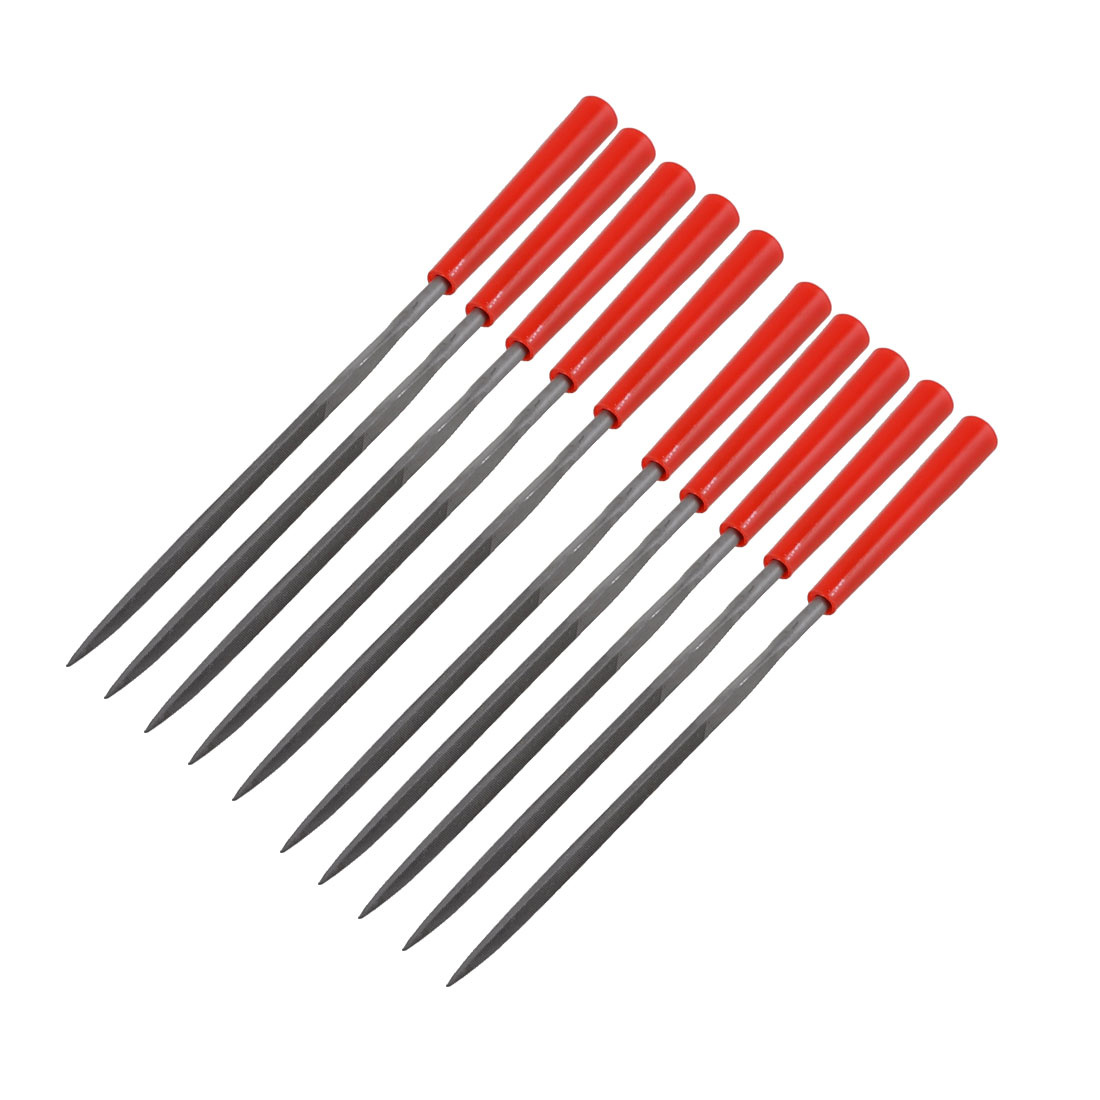 Red Plastic Grip 3mm x140mm Woodwork Triangle Needle Files Tool 10 Pcs